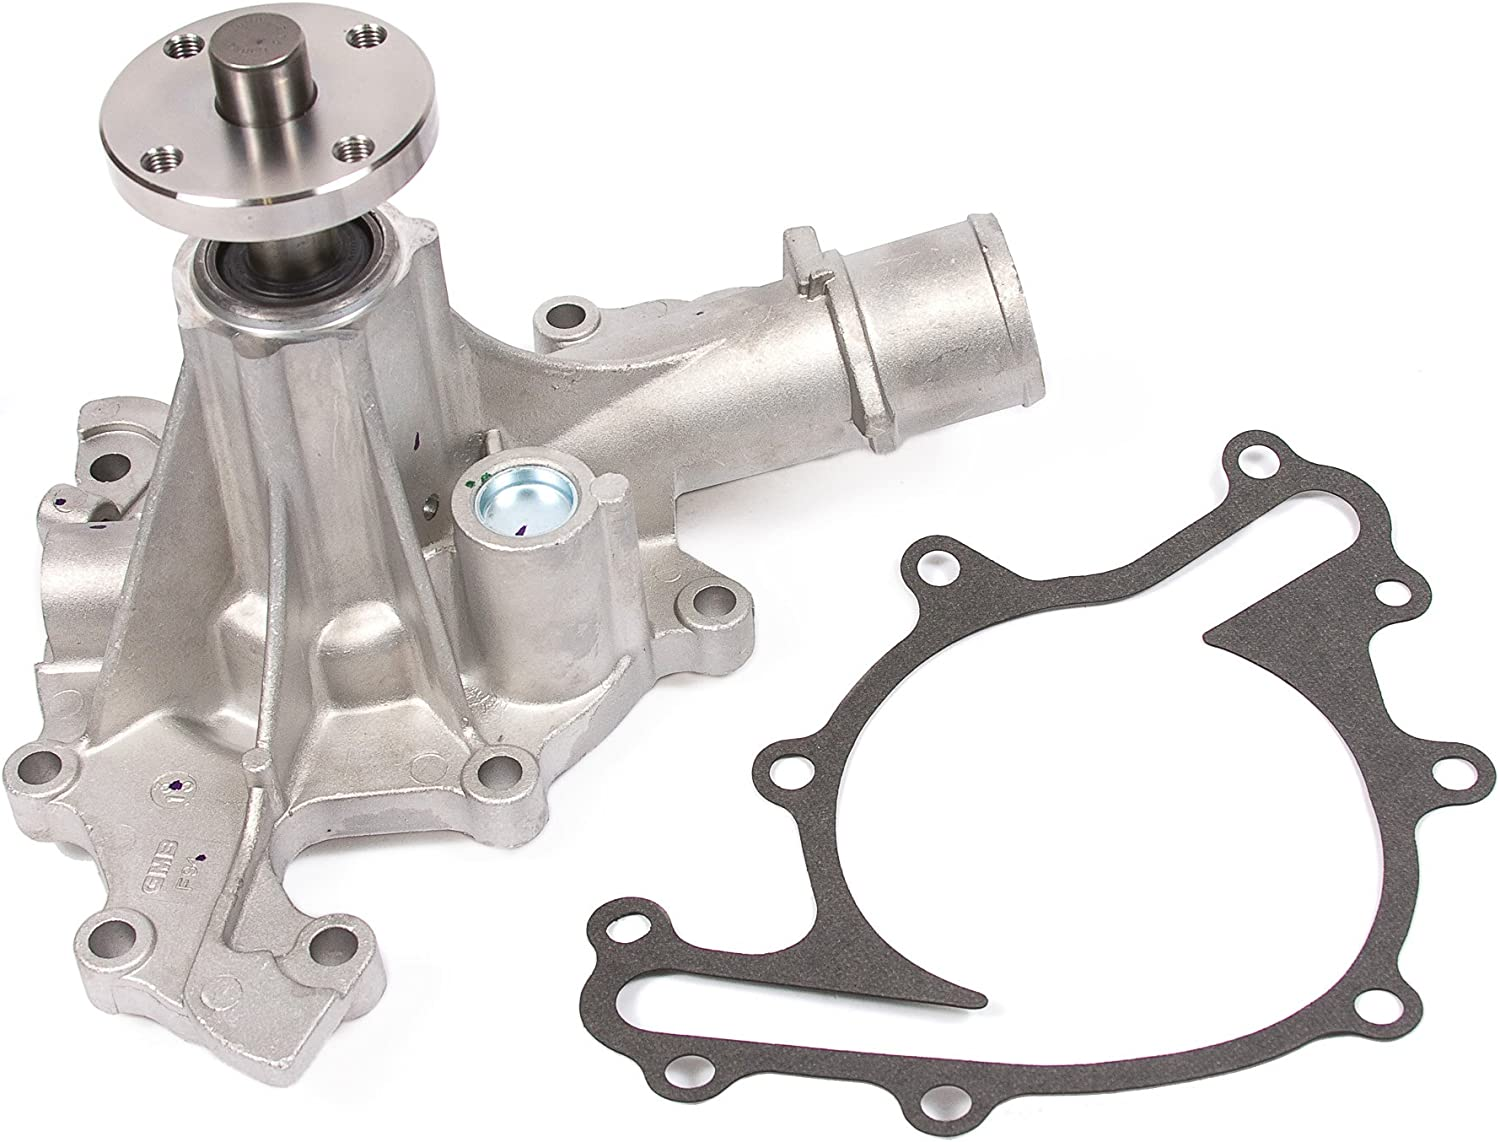 Water Pump Fits 96-04 Ford Mercury Cougar Mustang 3.8L V6 OHV 12v